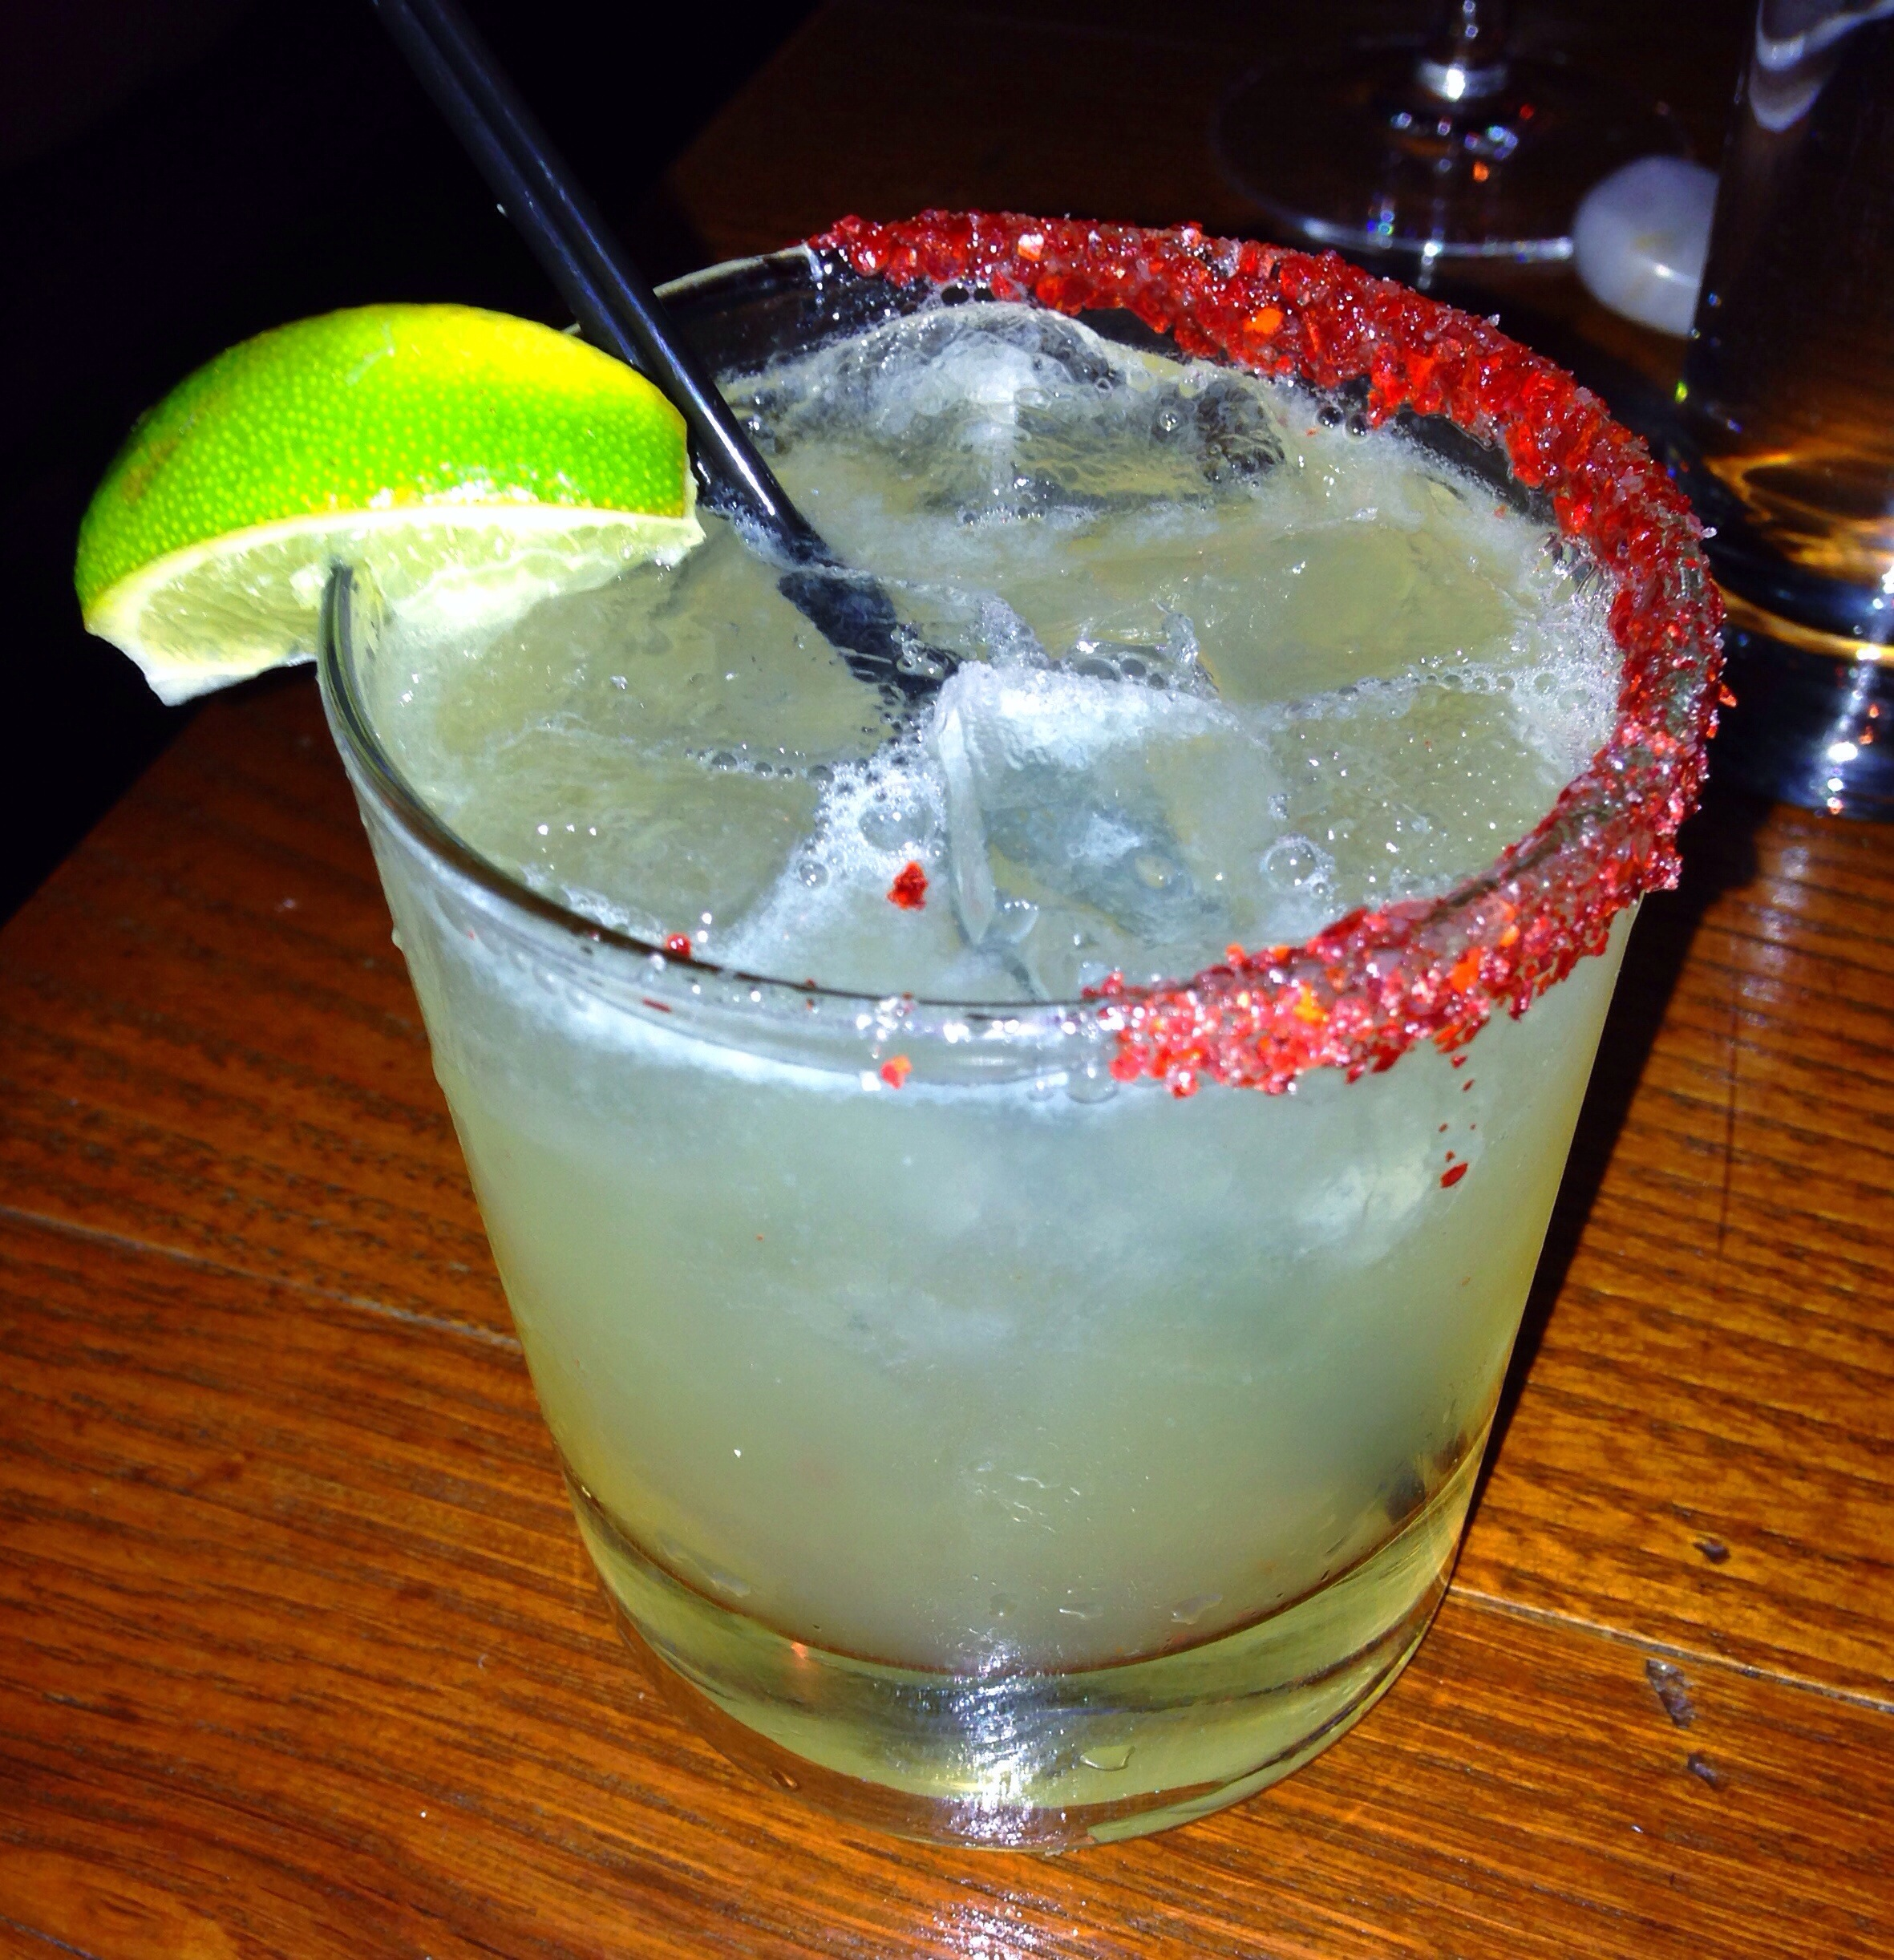 ... – Chili Infused Tequila, Soda, Bitters, Lime, Chili Salt Rim